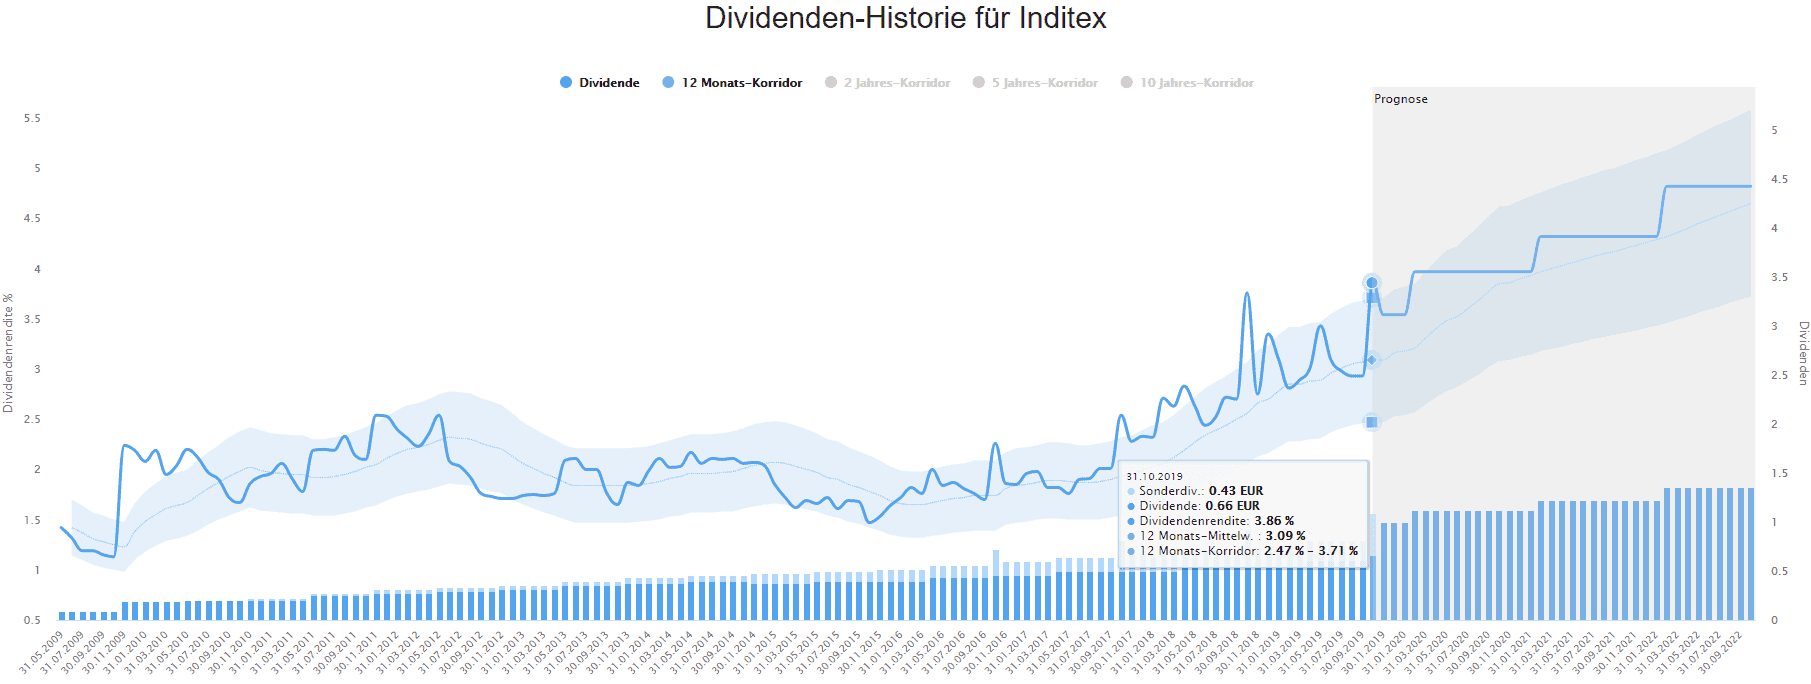 Inditex im Dividenden-Turbo